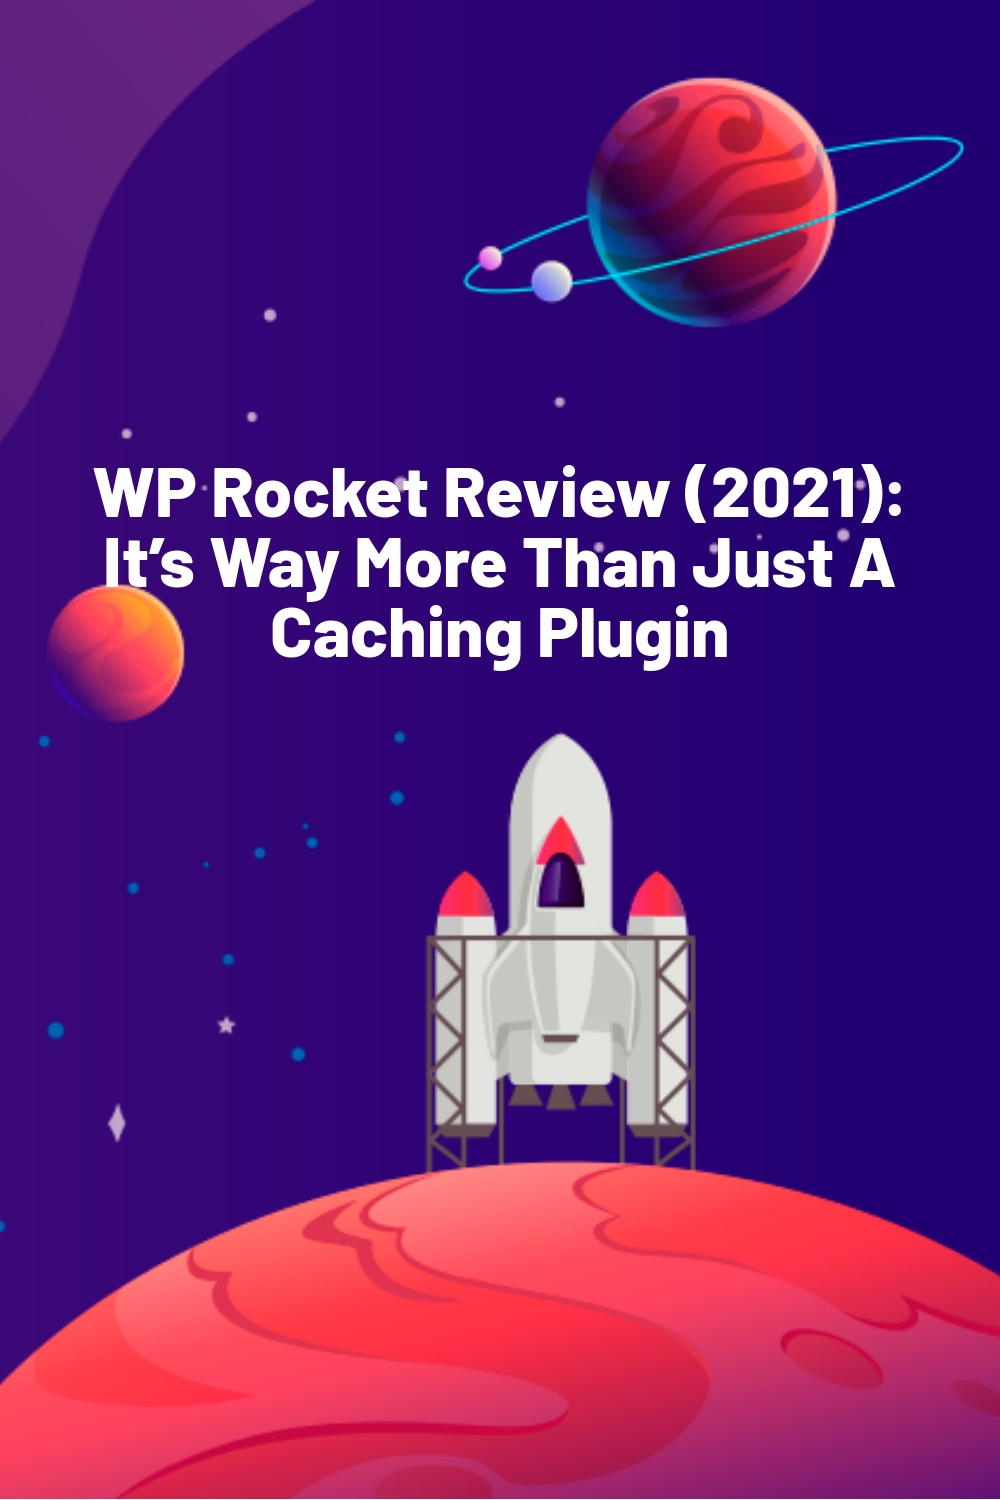 WP Rocket Review (2021): It's Way More Than Just A Caching Plugin